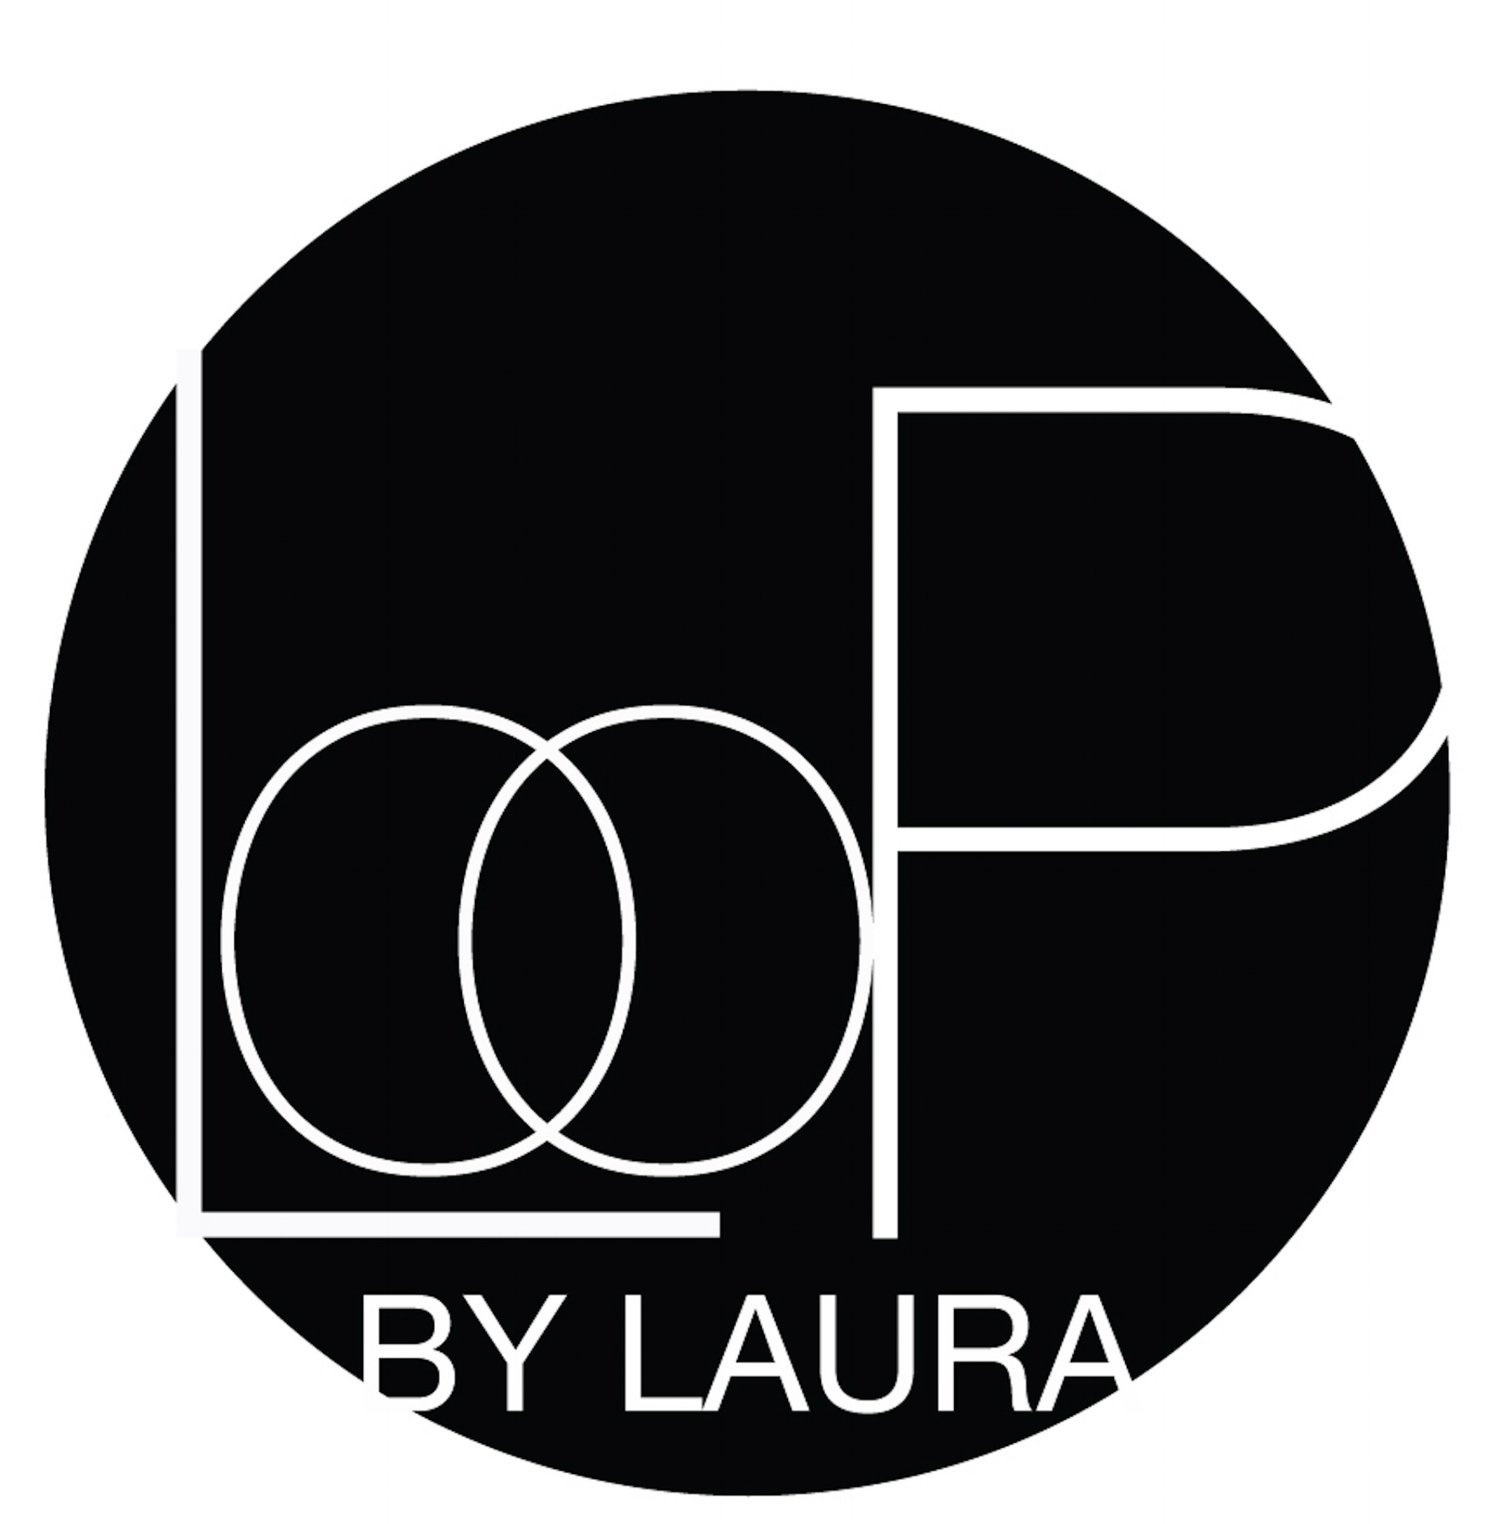 Loop by Laura